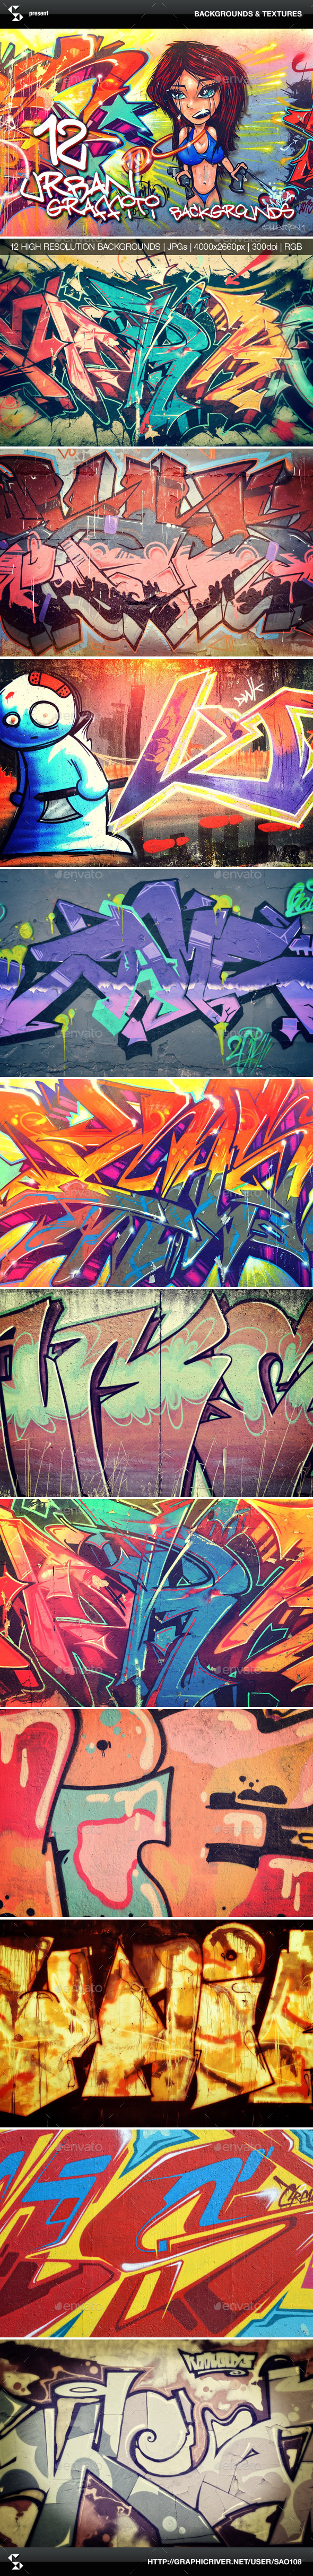 Urban Graffiti Backgrounds - Collection 1 - Urban Backgrounds